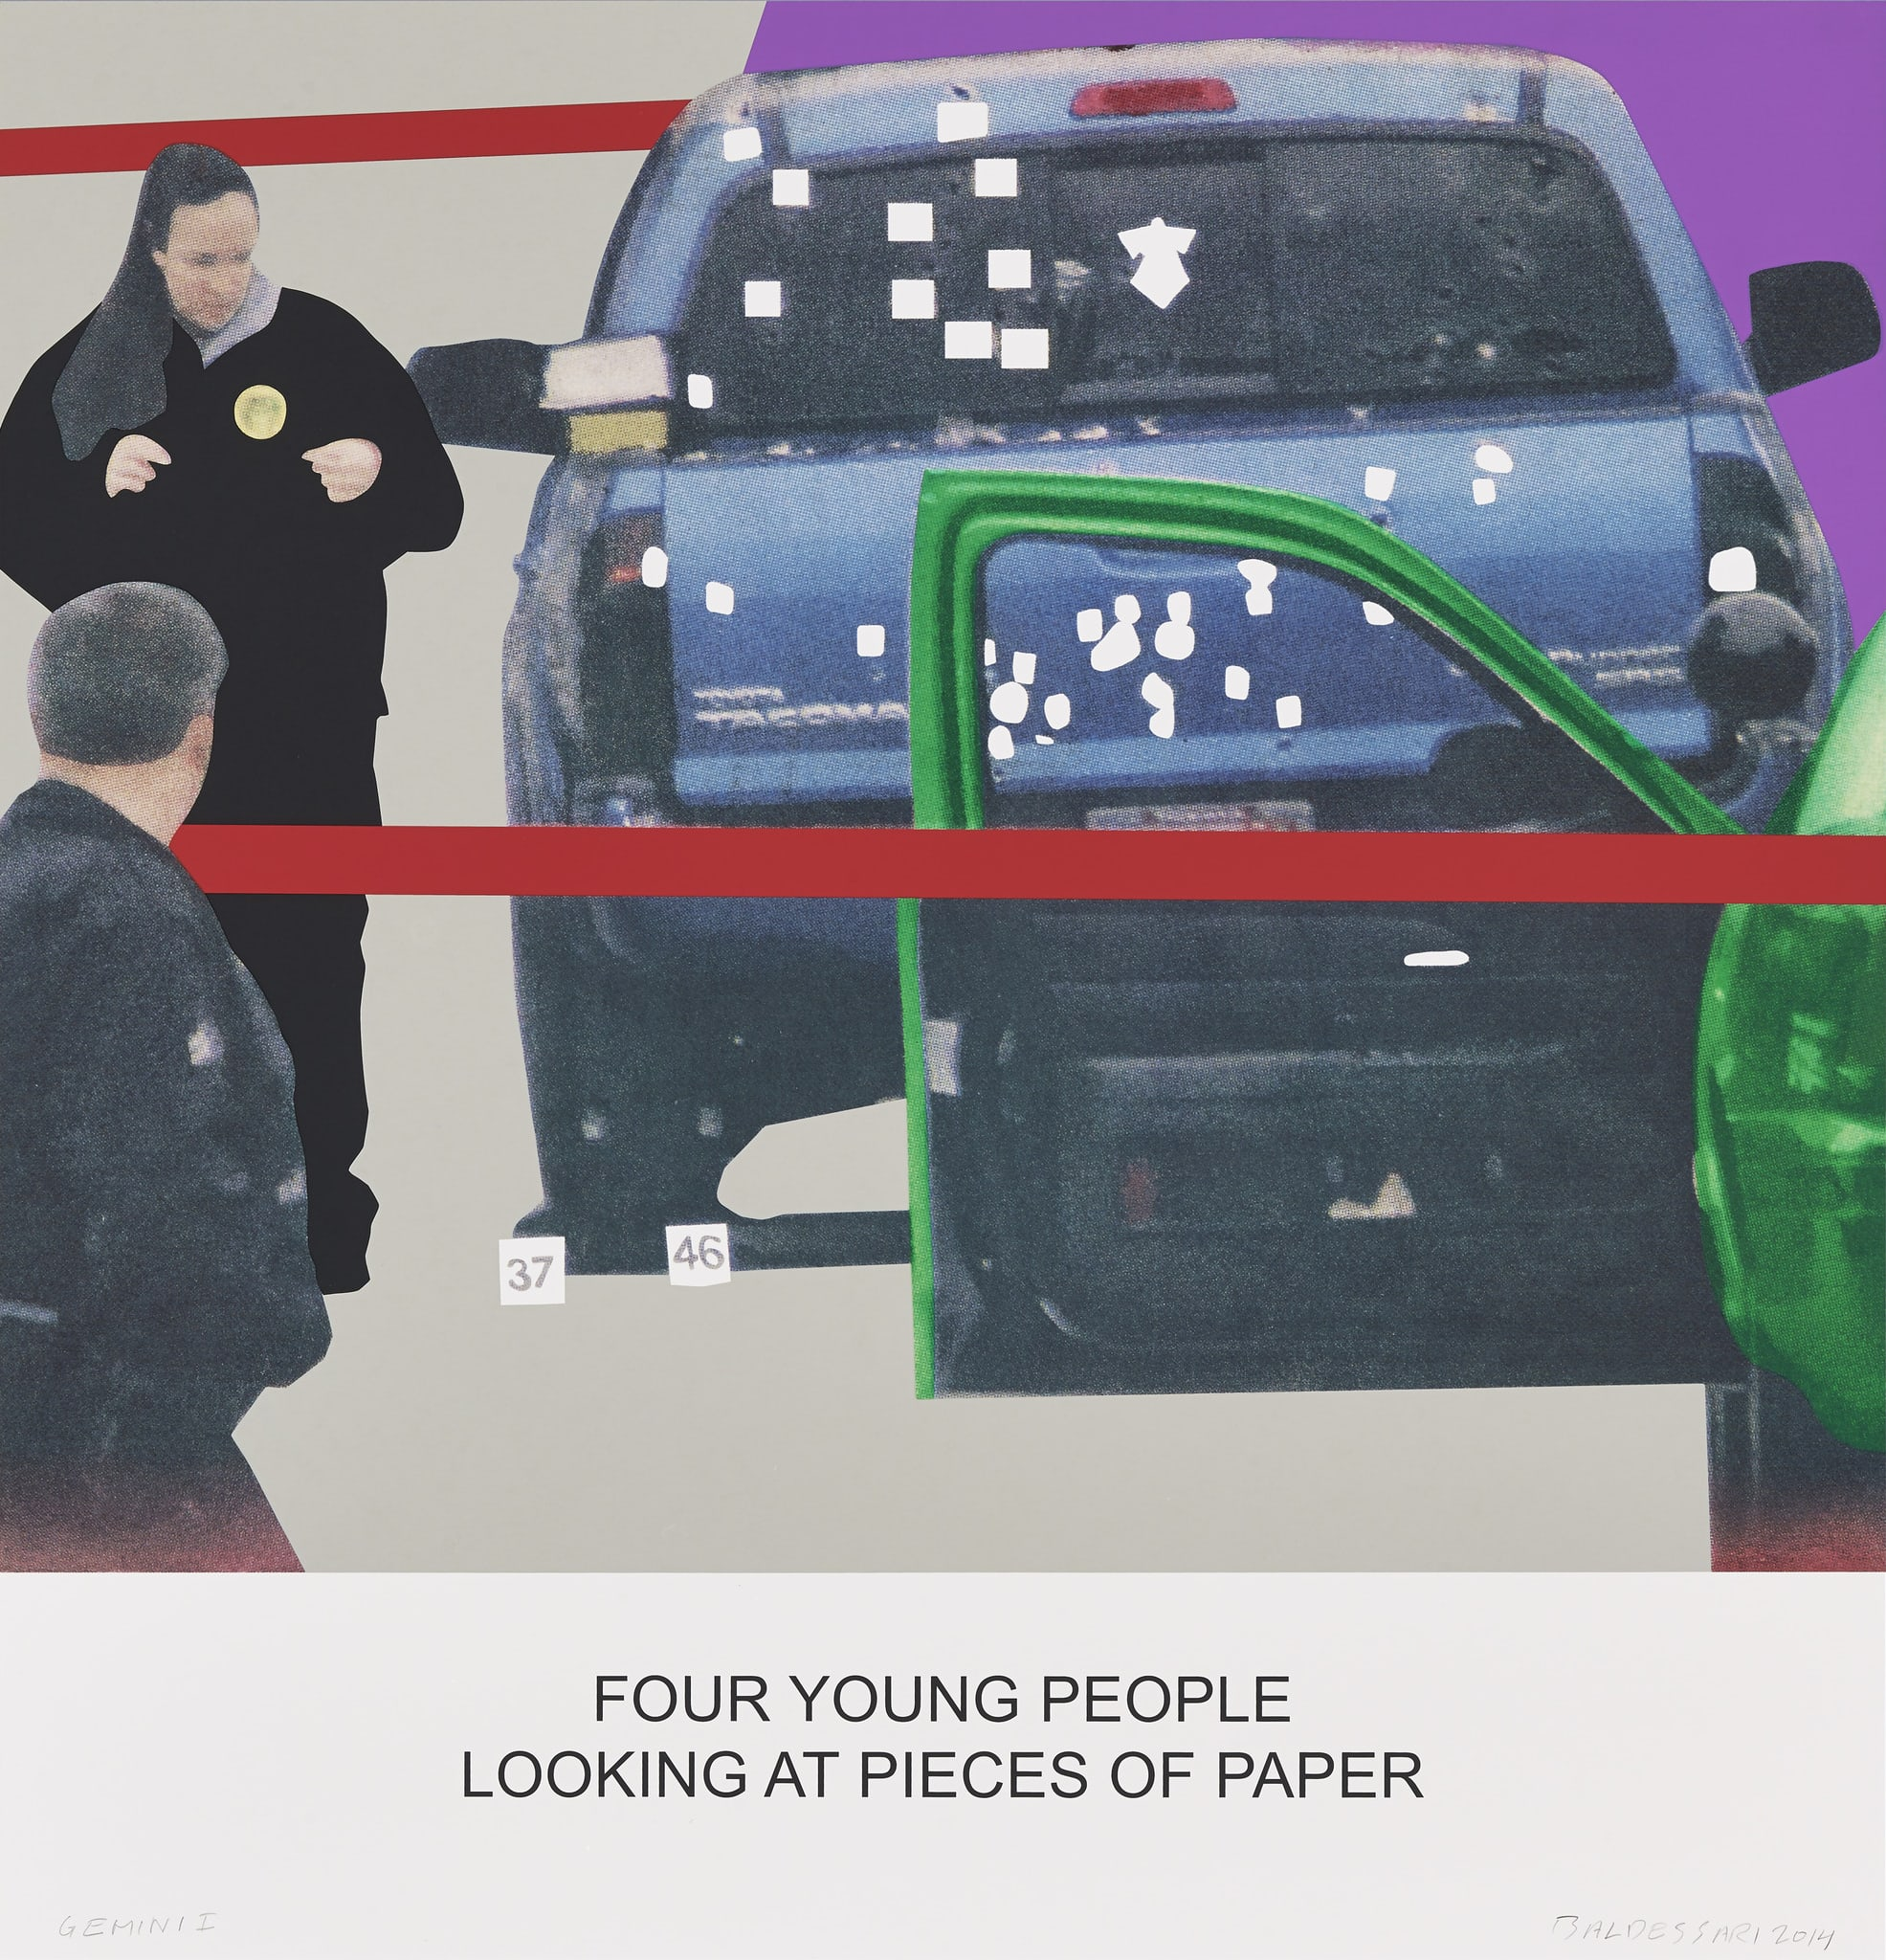 The News: Four Young People Looking at Pieces of Paper by John Baldessari